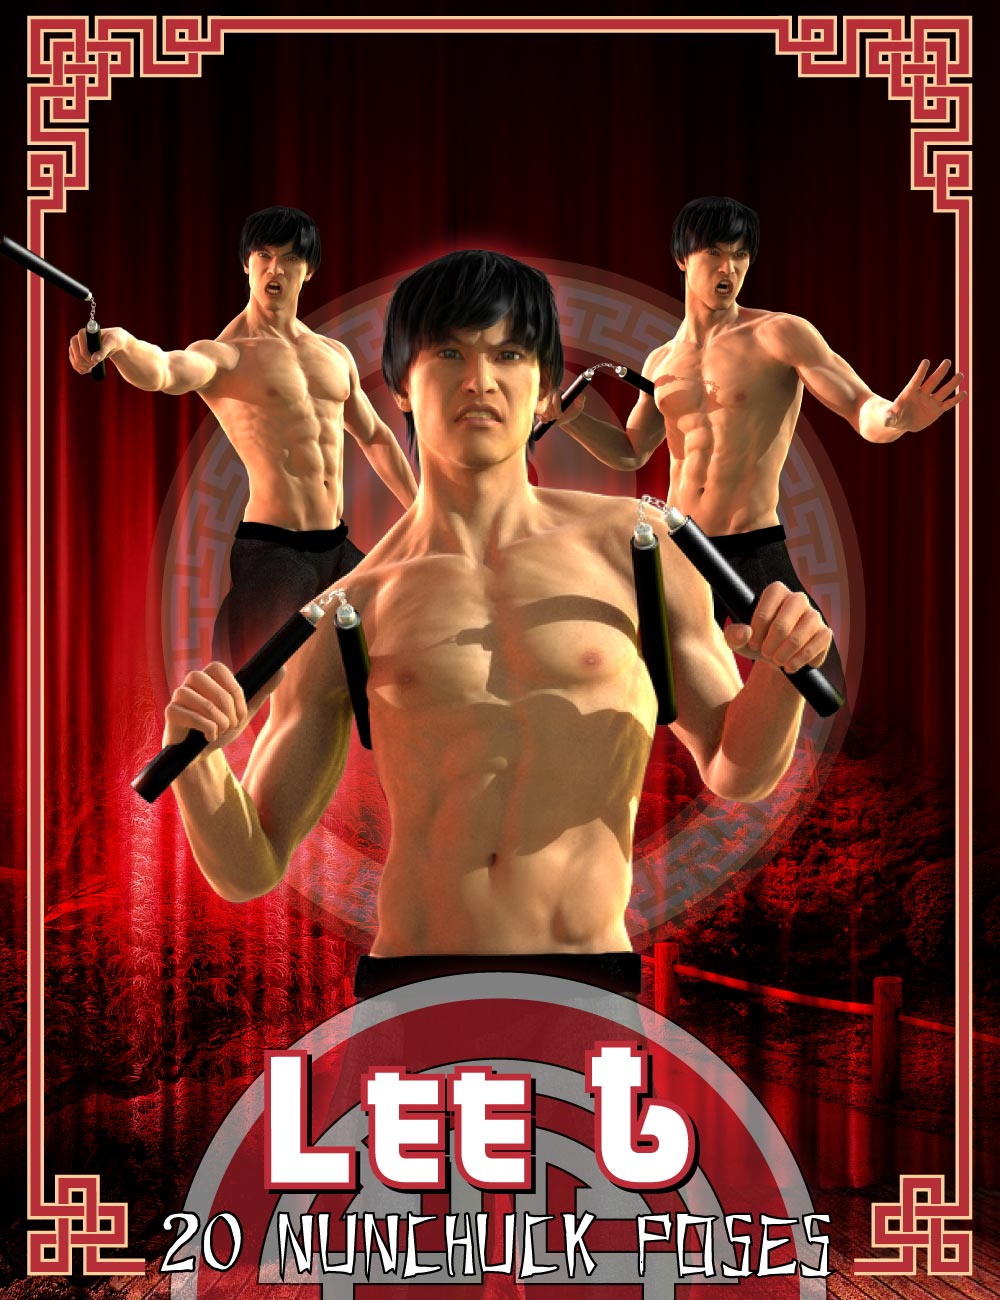 DA Nunchuck Pose Set for Lee 6 by: Design Anvil, 3D Models by Daz 3D